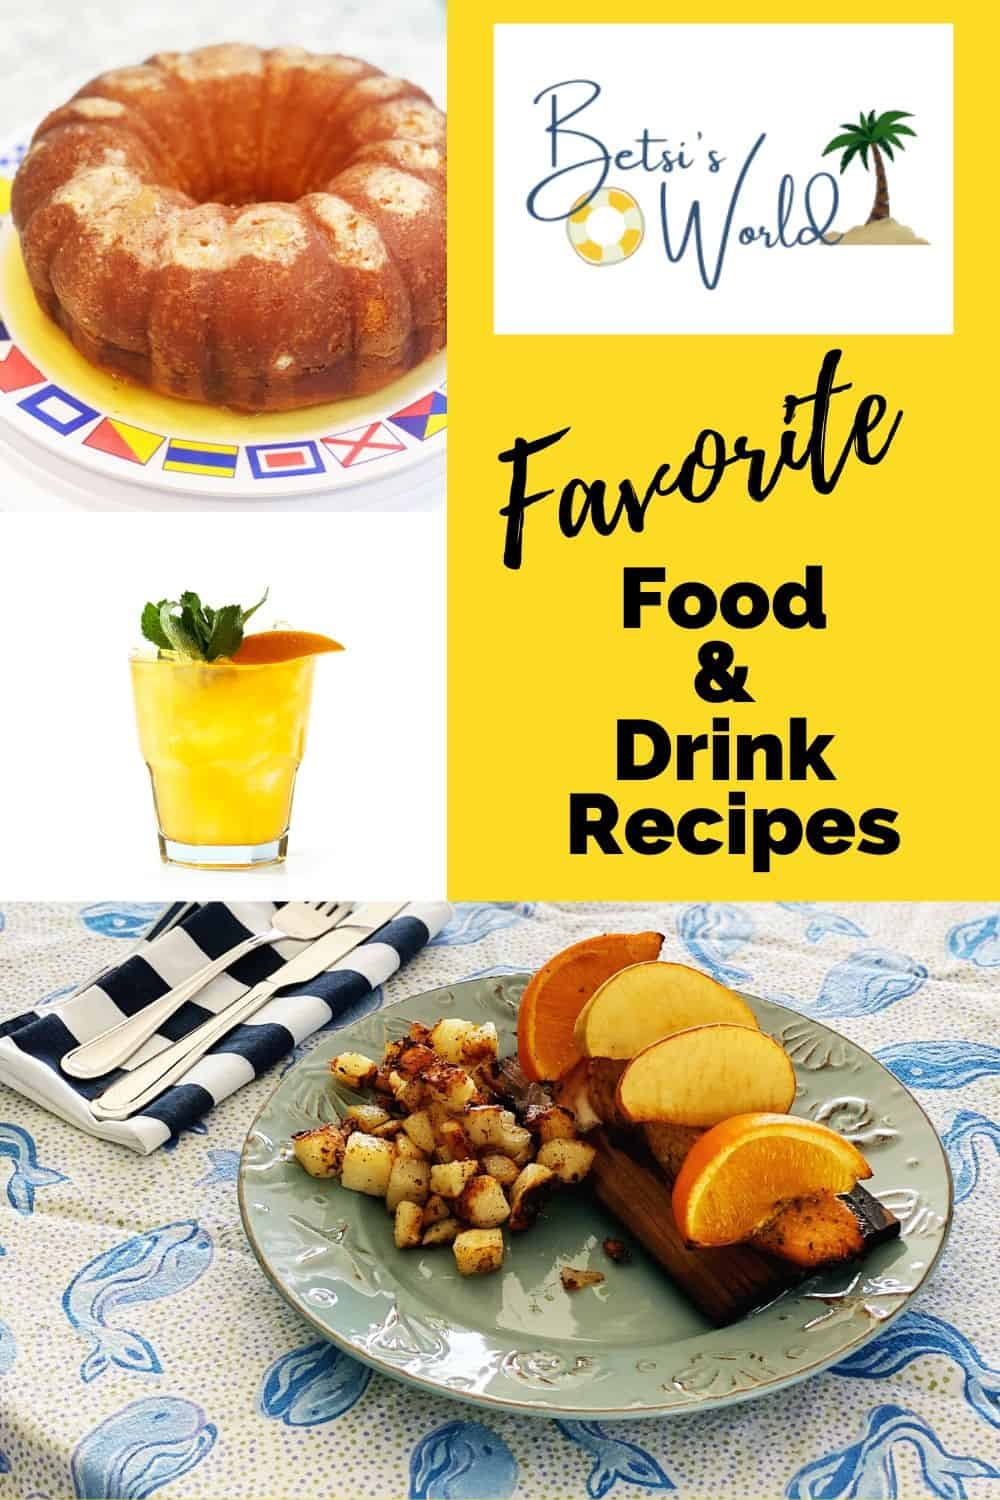 Have you ever had a night when you know you have to cook, but you don't want to think about what to cook? That's where we can help! Our food & drink recipes are quick, easy, and delicious. This means you won't be spending all day in the kitchen! #quick&easyrecipes #food&drink #food #cocktails